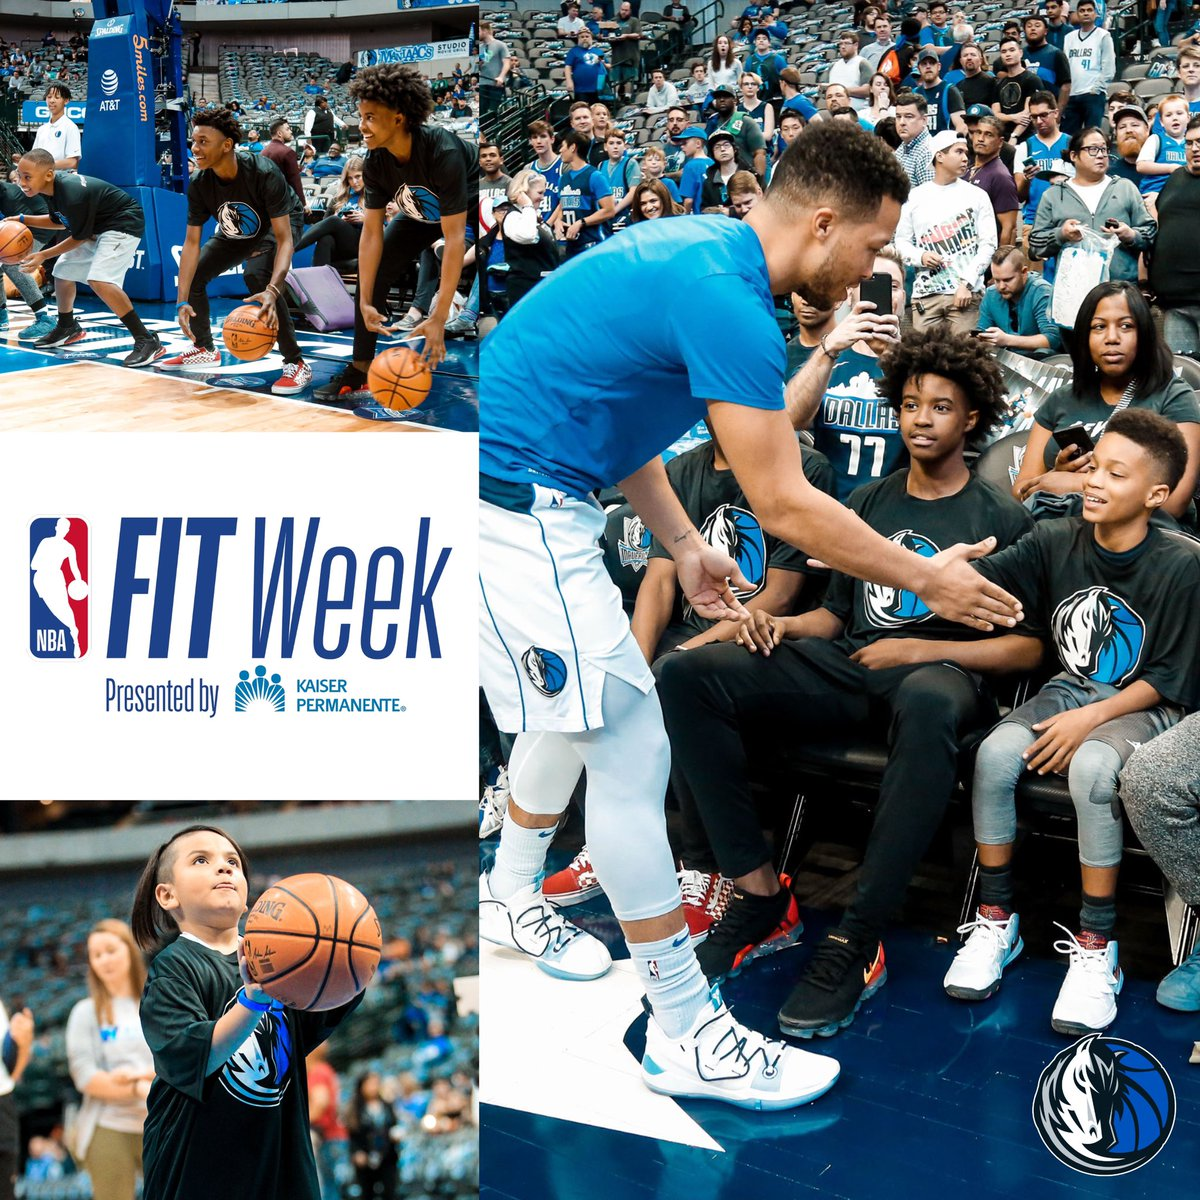 To celebrate NBA Fit Week @JalenBrunson1 and @MavsAcad took some time pregame to work with young hoopers. @NBAcares   #MFFL